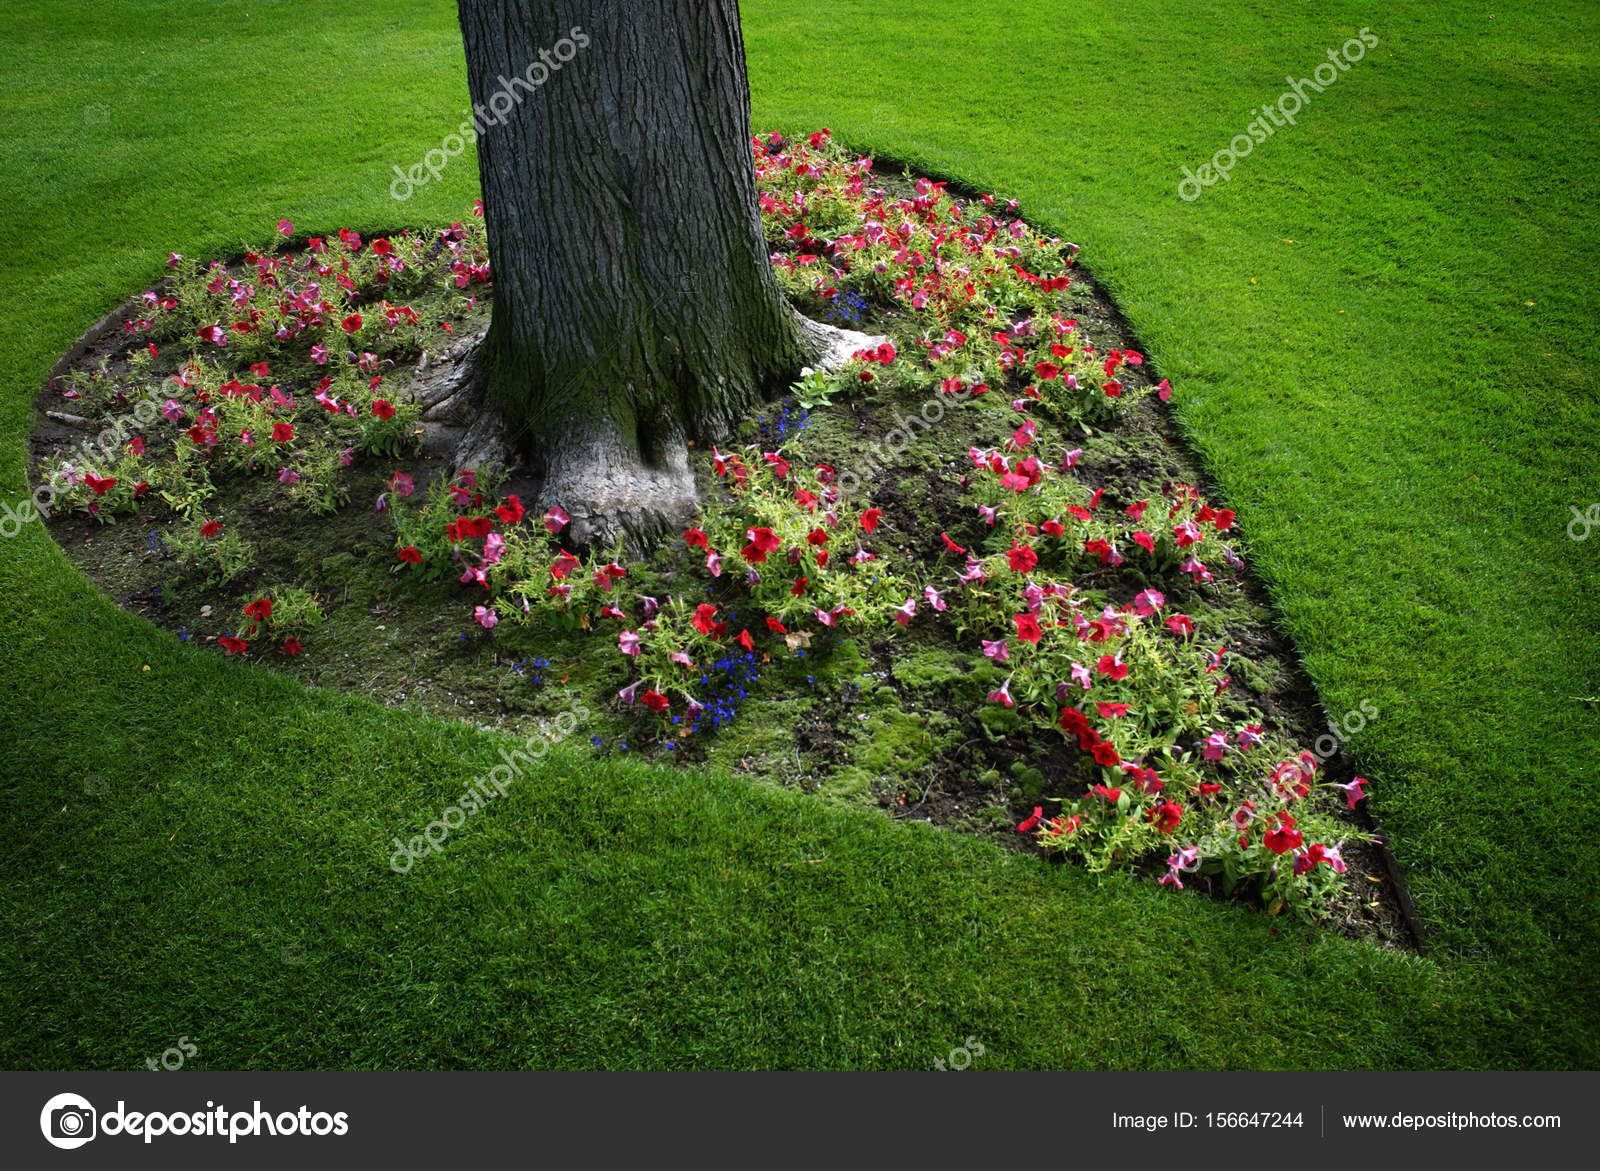 Pictures Heart Shaped Garden Heart Shaped Flower Garden Around Tree Stock Photo C Eric1513 156647244